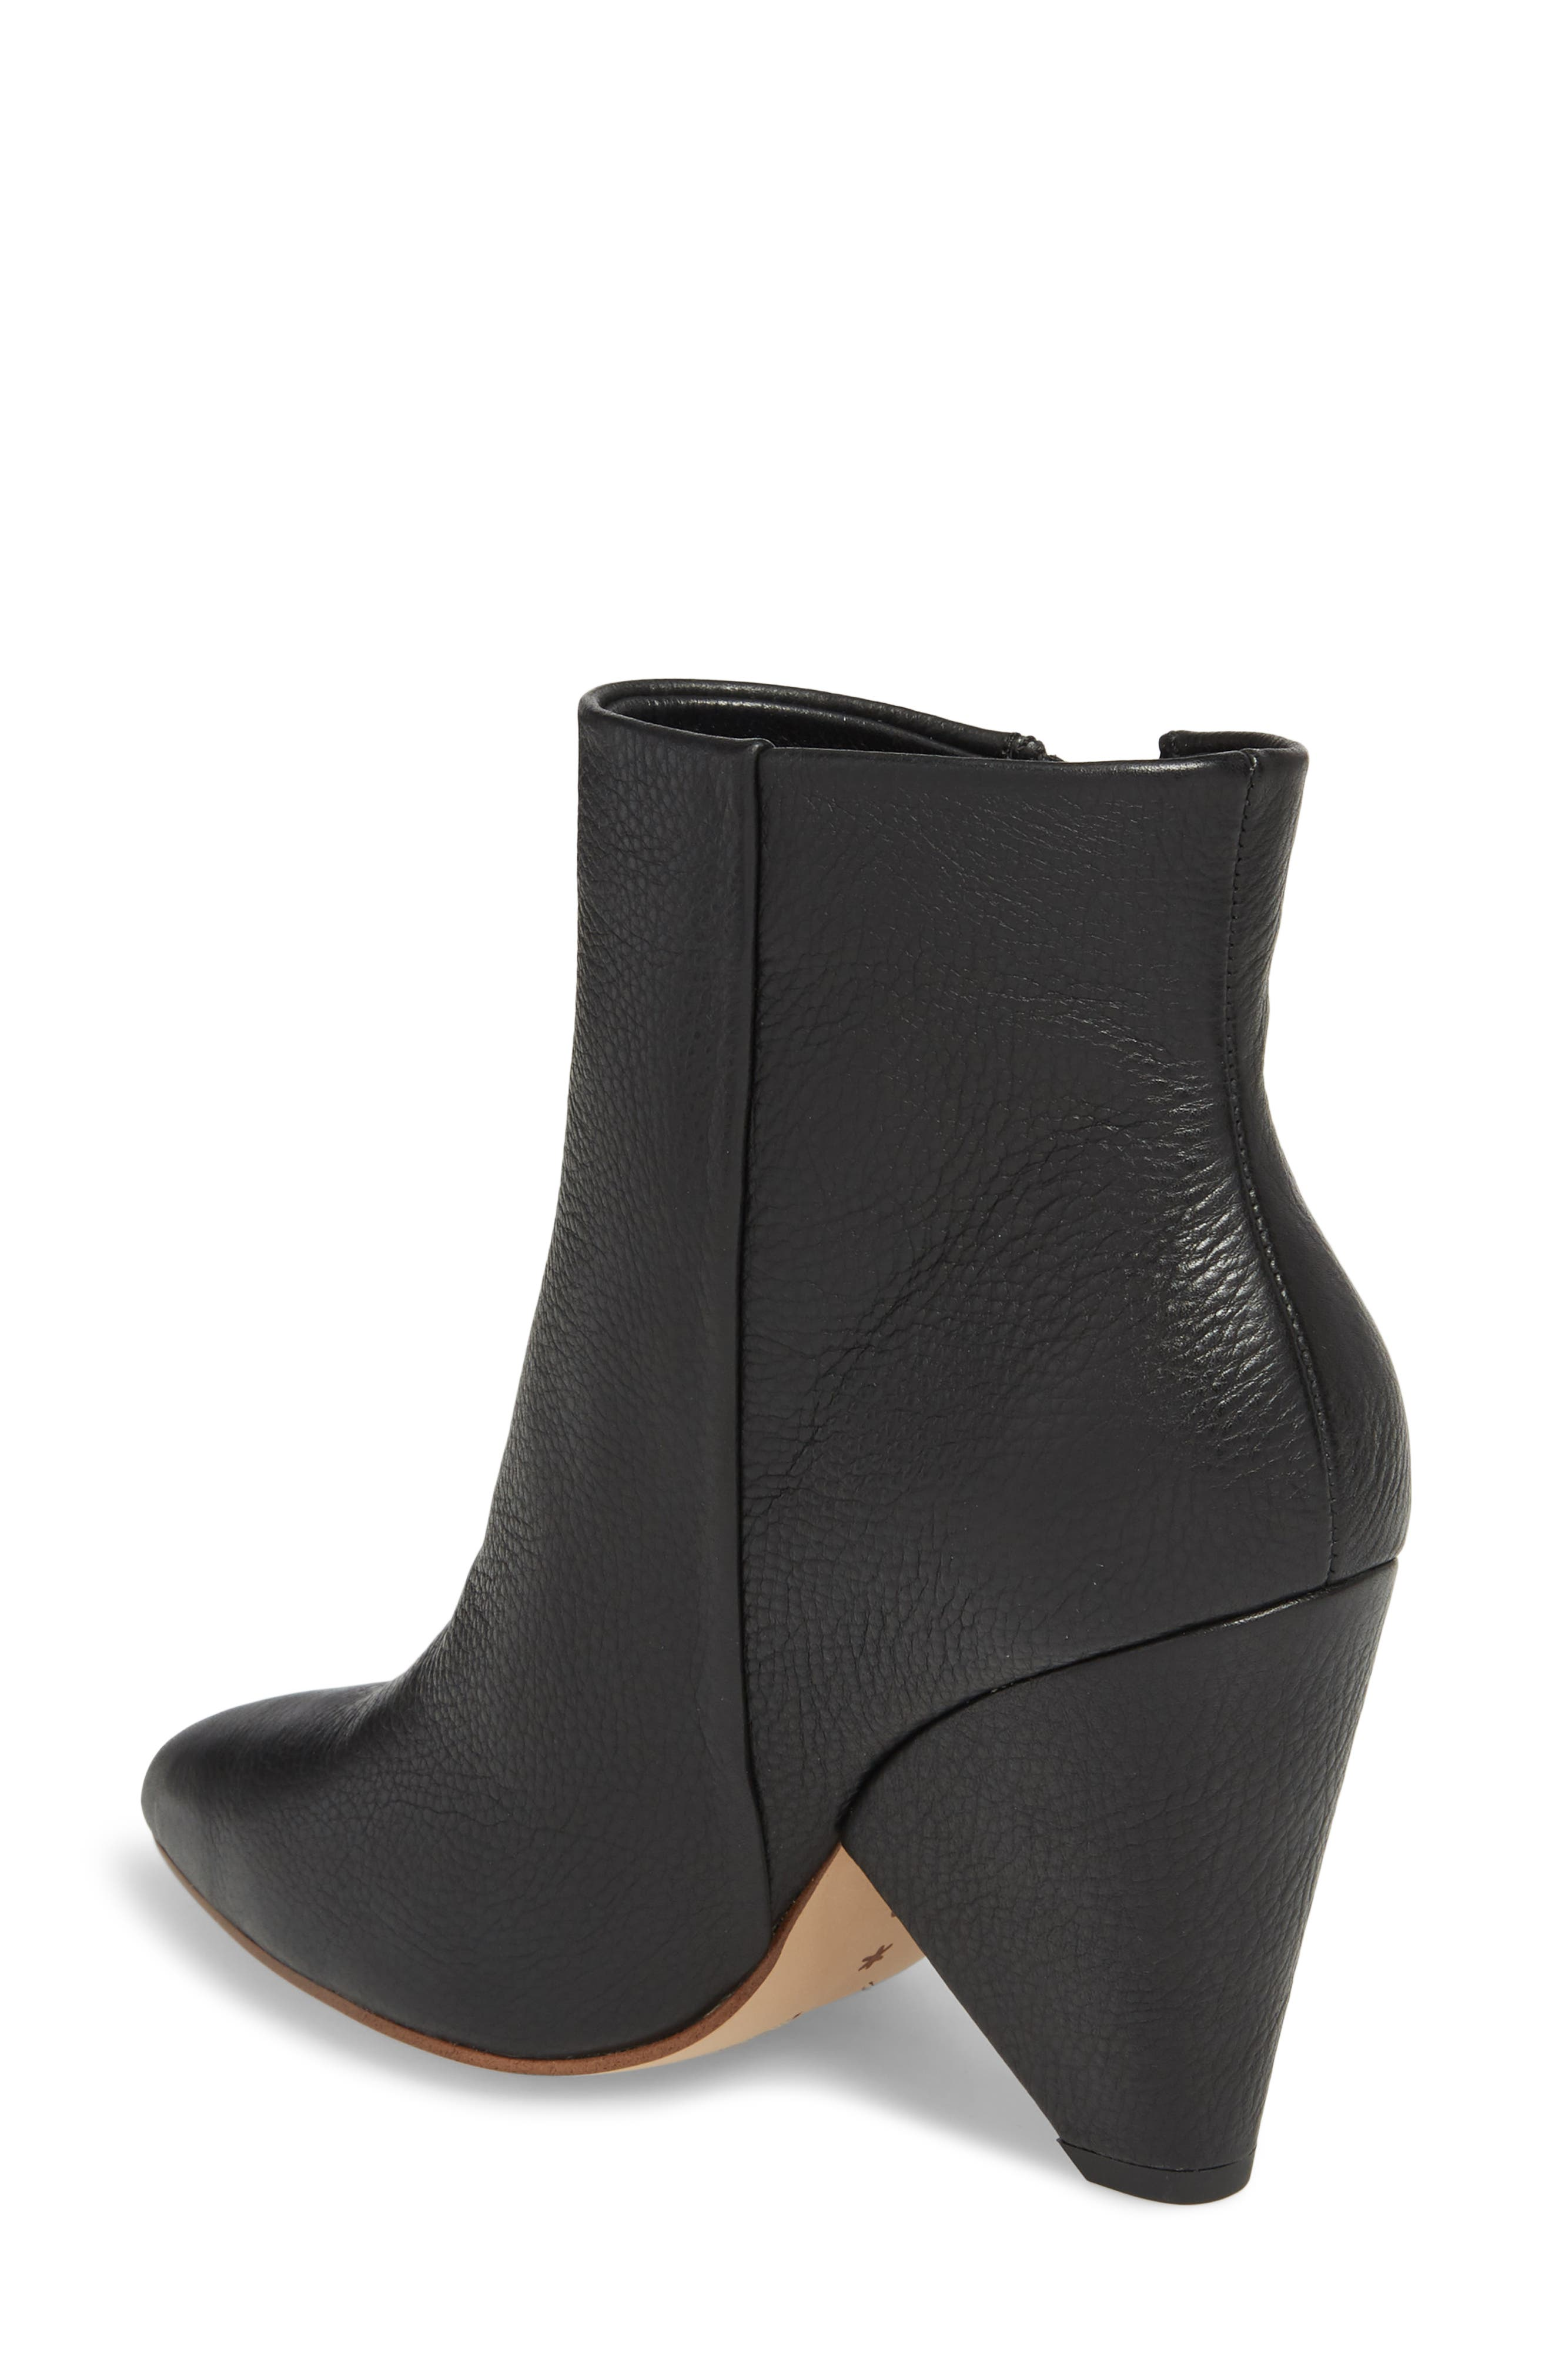 Neva Cone Heel Bootie,                             Alternate thumbnail 2, color,                             002